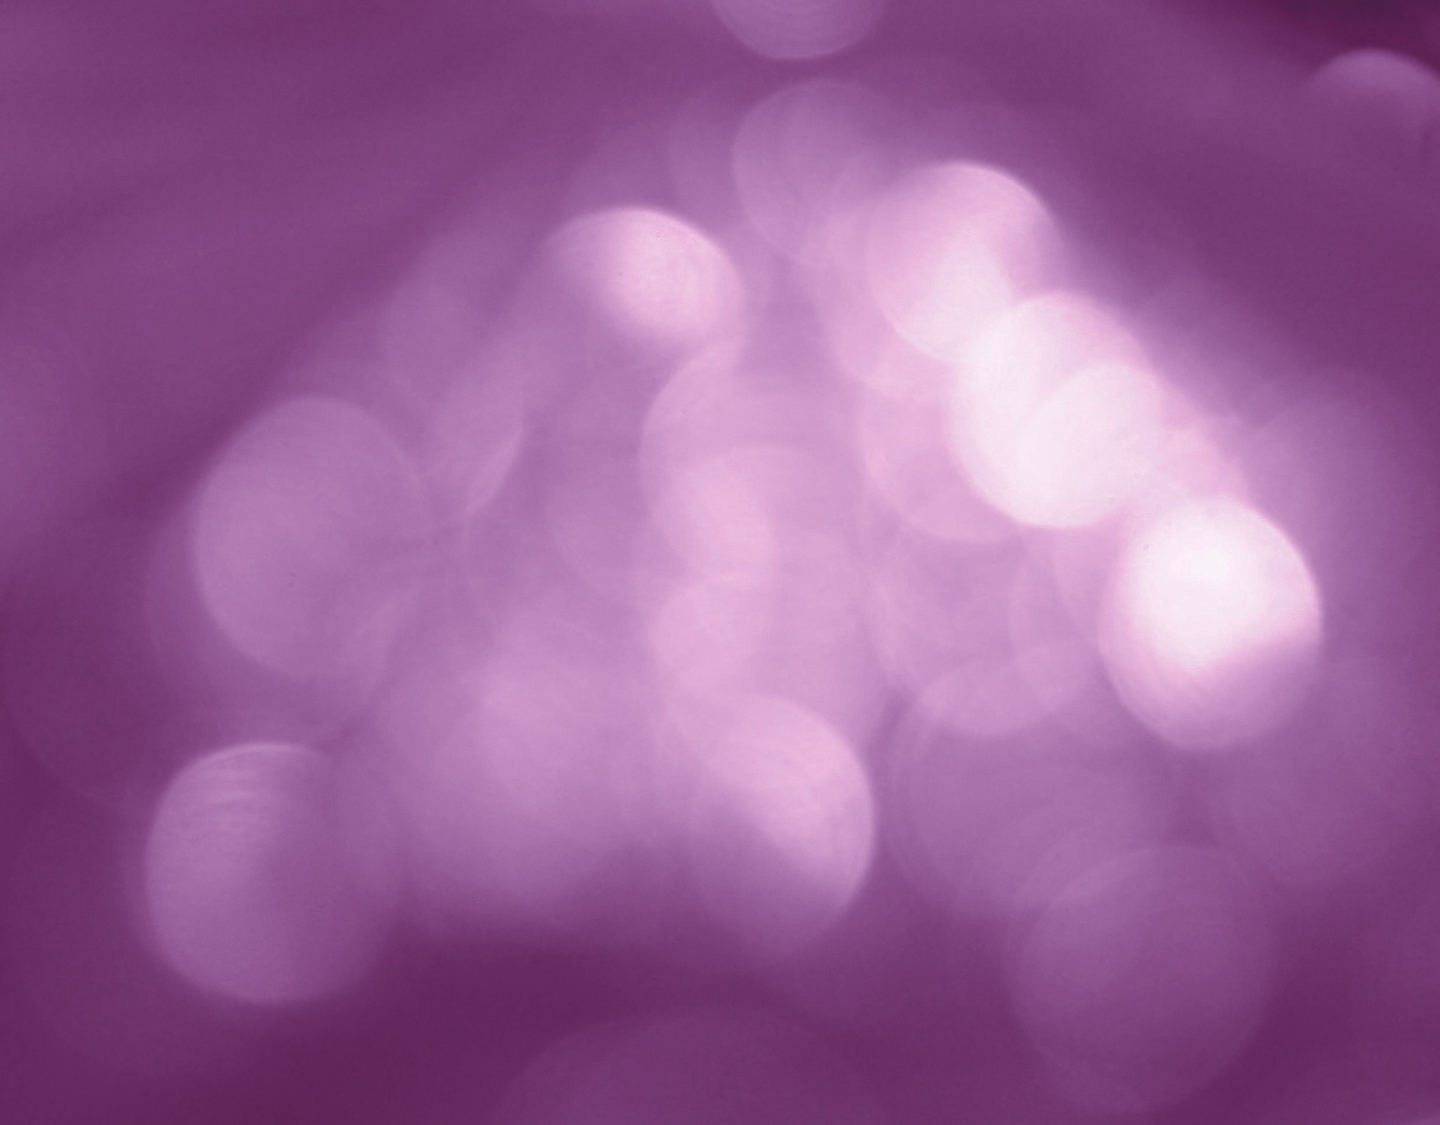 http://1.bp.blogspot.com/-4rrgbtLxwCE/UAe7_KfwKhI/AAAAAAAAEaE/8wGk71F4_AA/s1600/Twitter+background+purple+bokeh.jpg